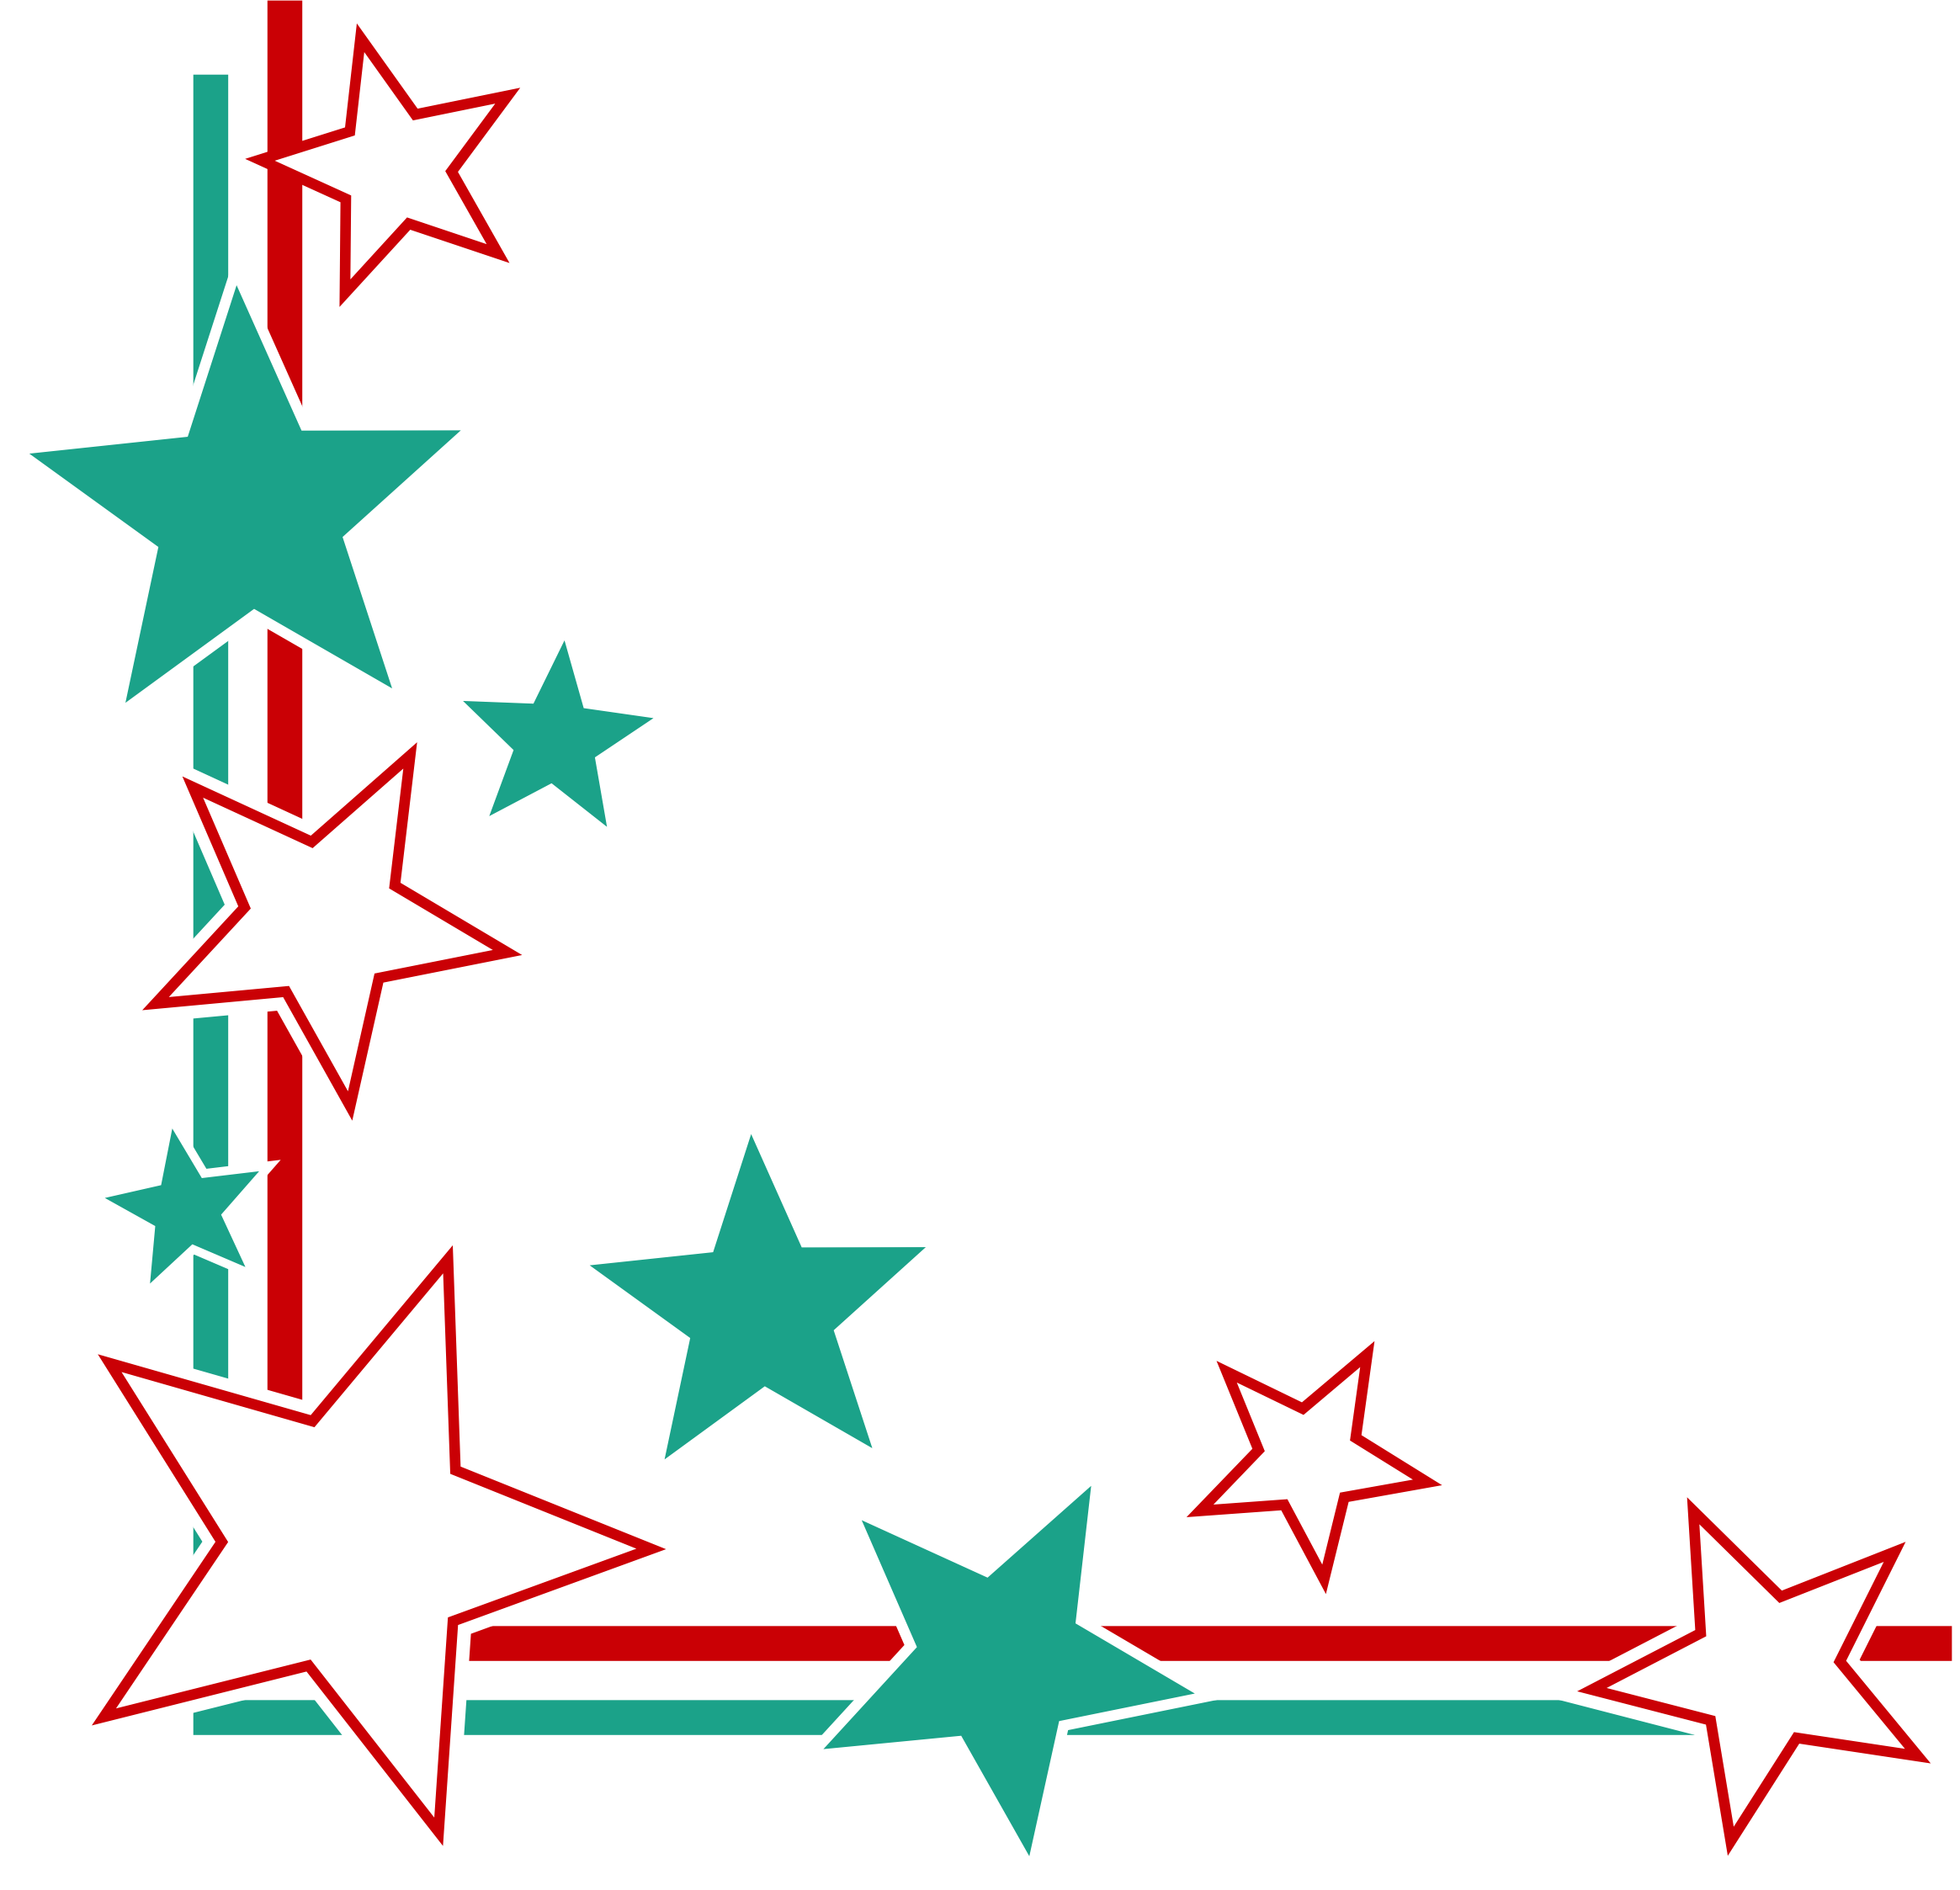 Star border clipart svg free stock Clipart - Page Corner Border svg free stock